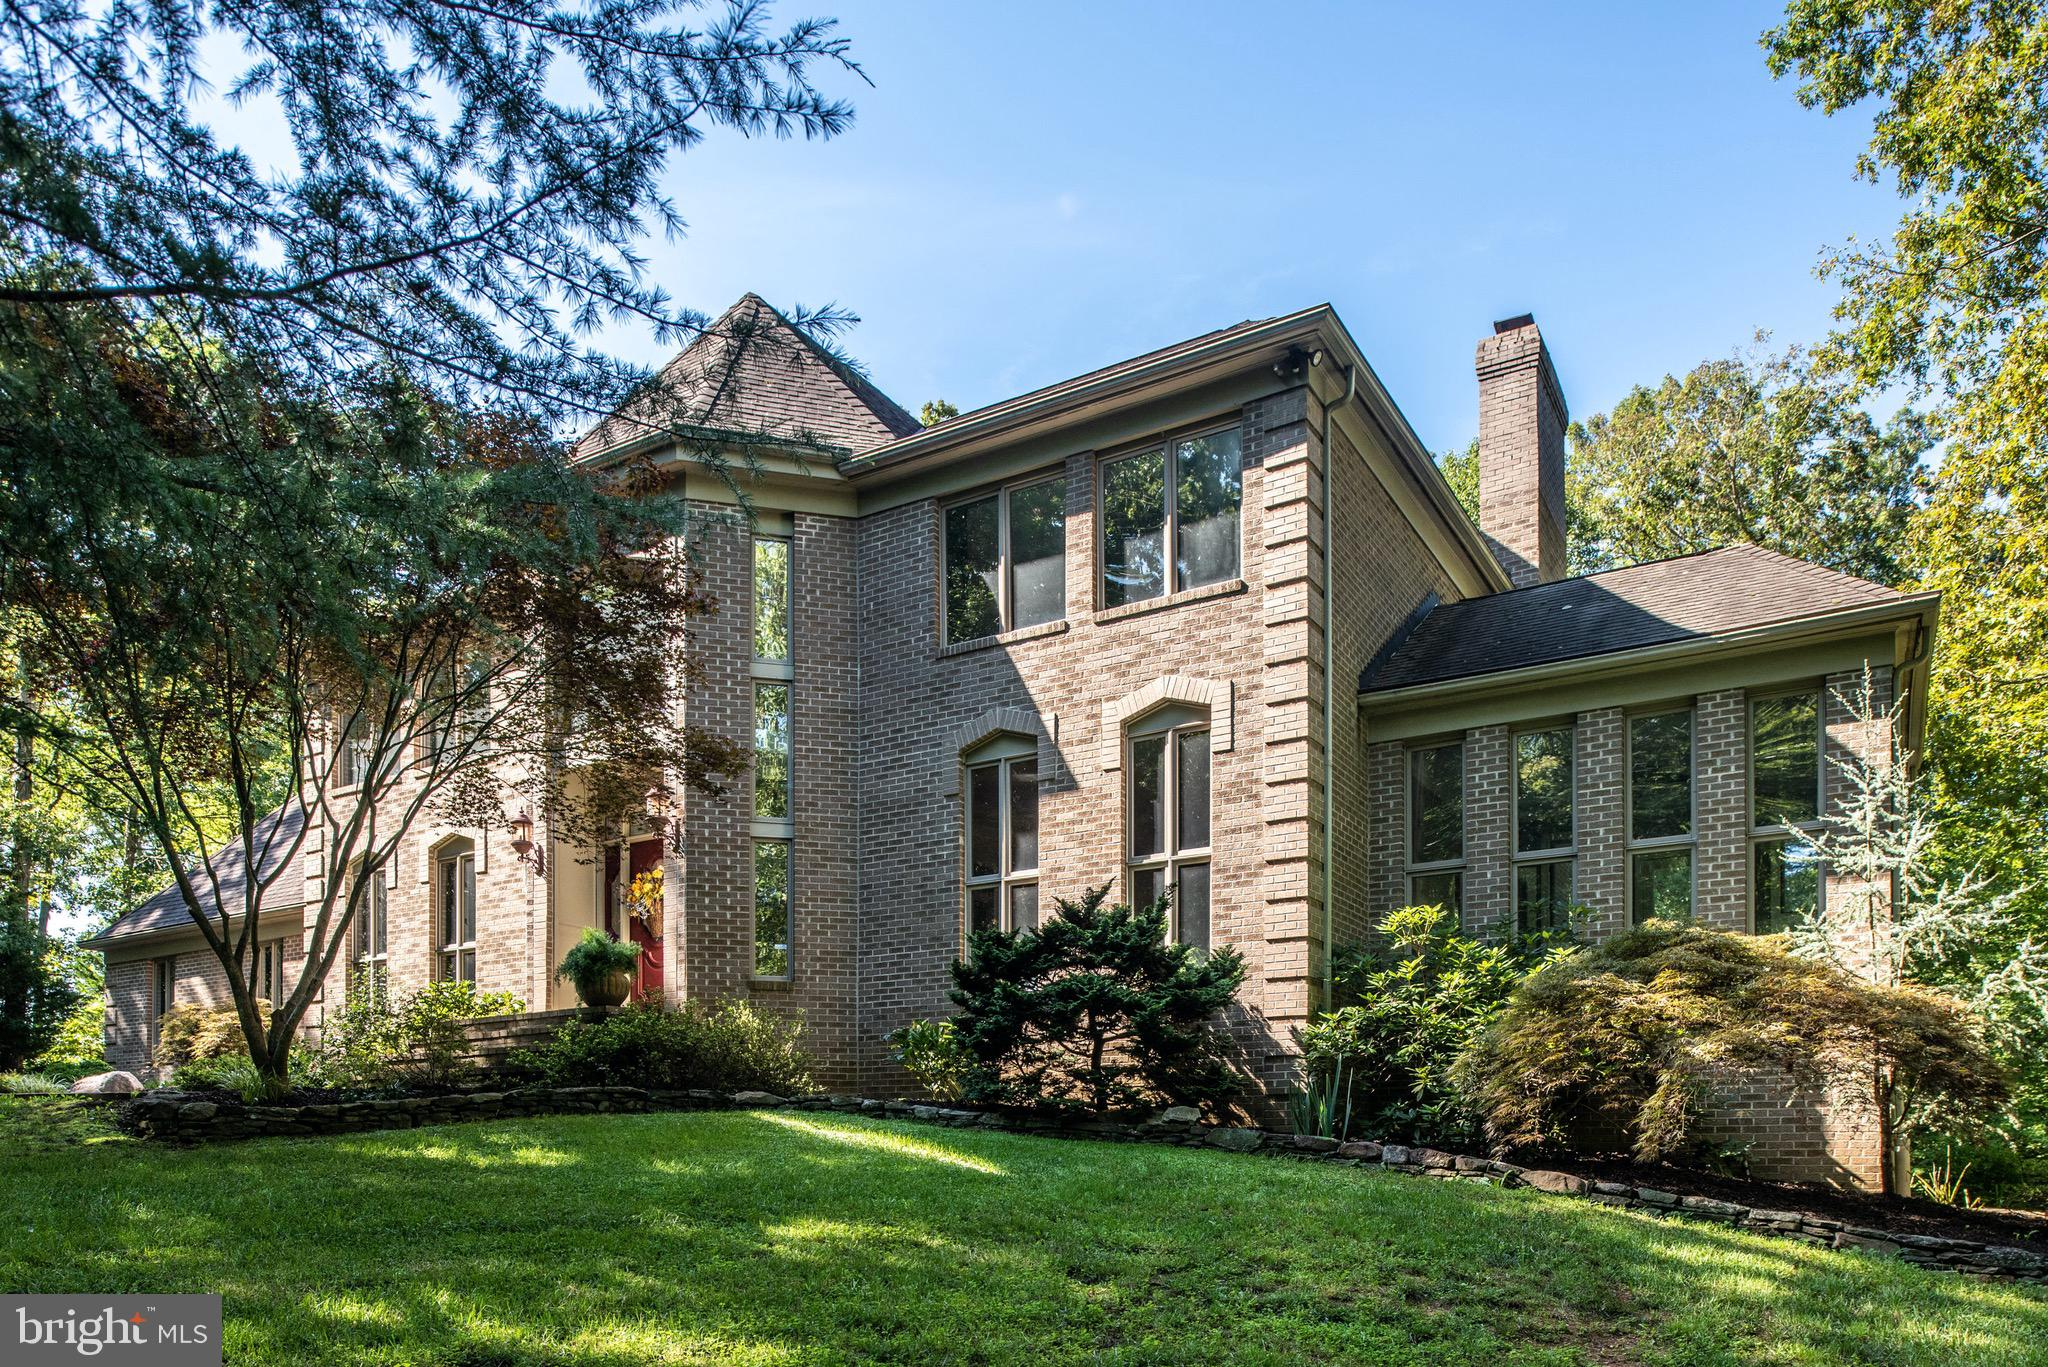 Welcome to 27 Rocky Run Road, a custom built, sophisticated Estate just minutes from Lake Mooney, I-